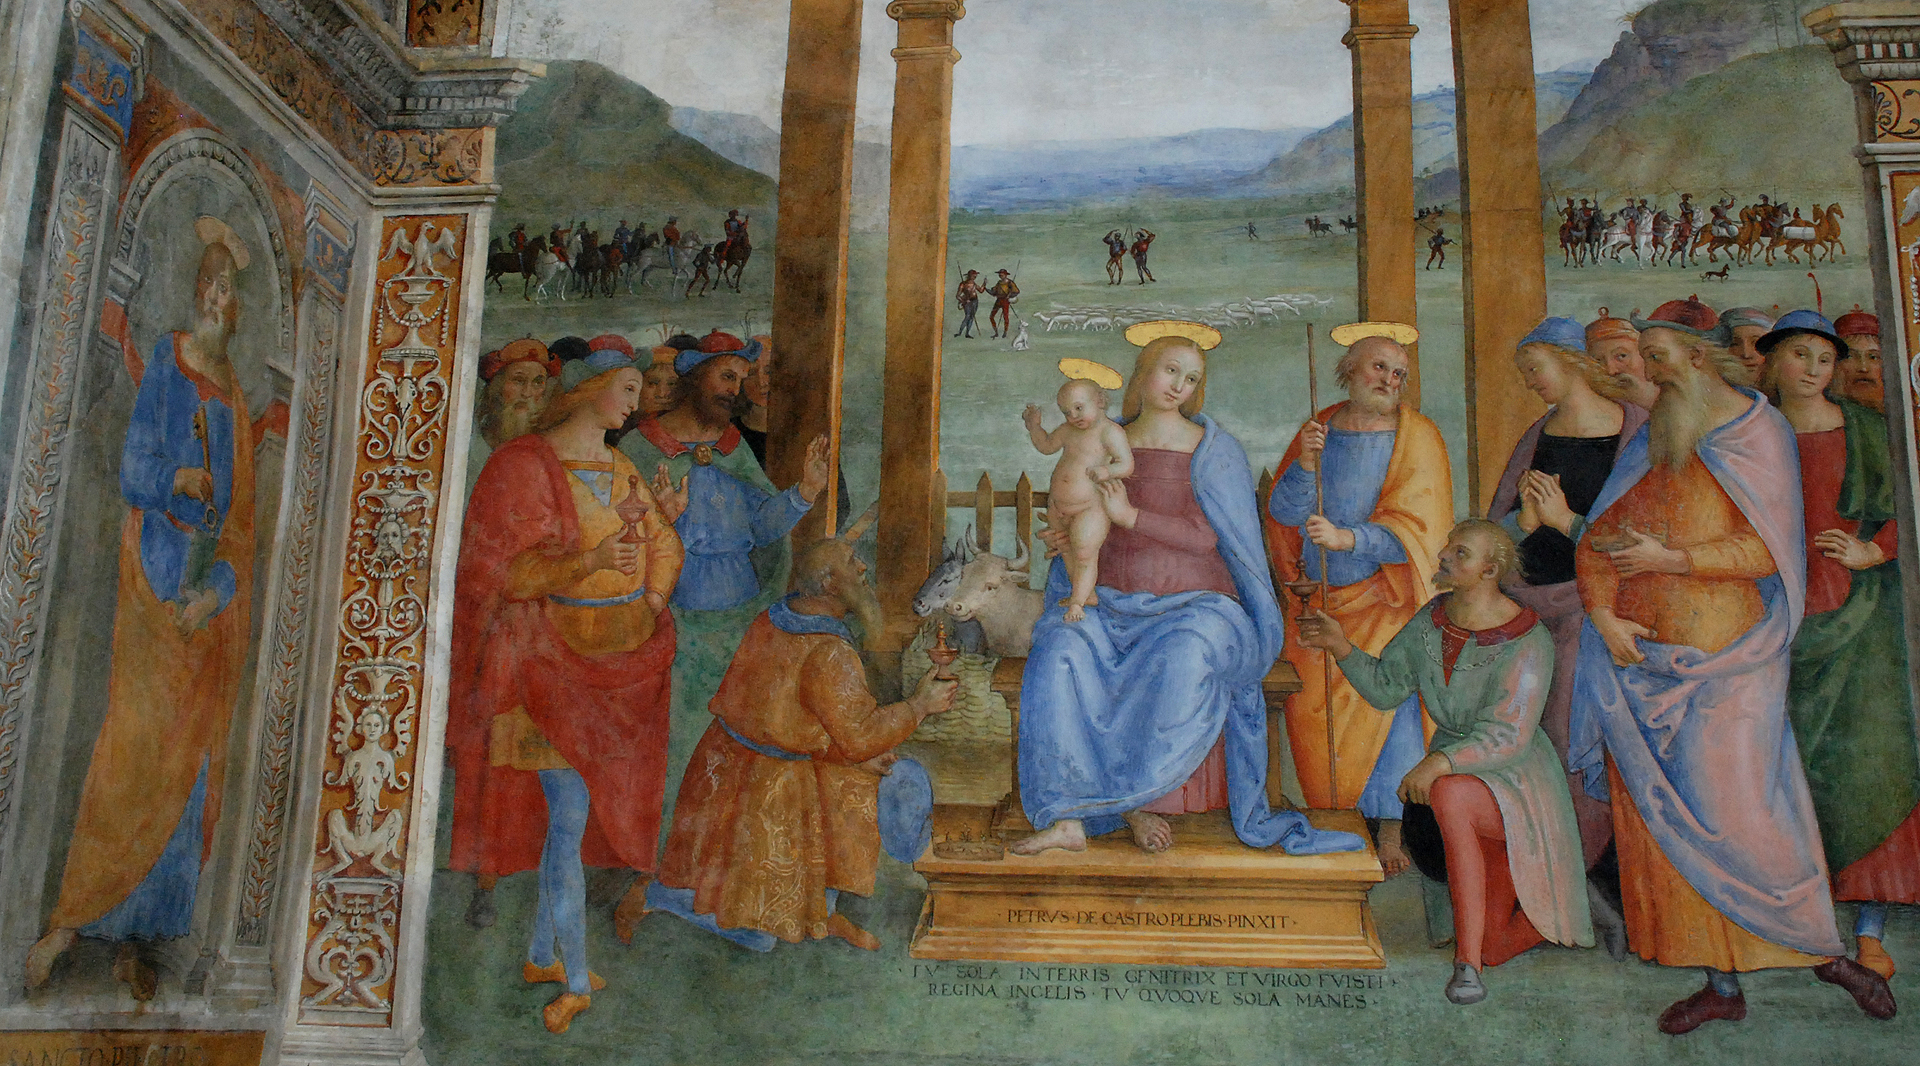 In the lands of Perugino: The Divine Painter